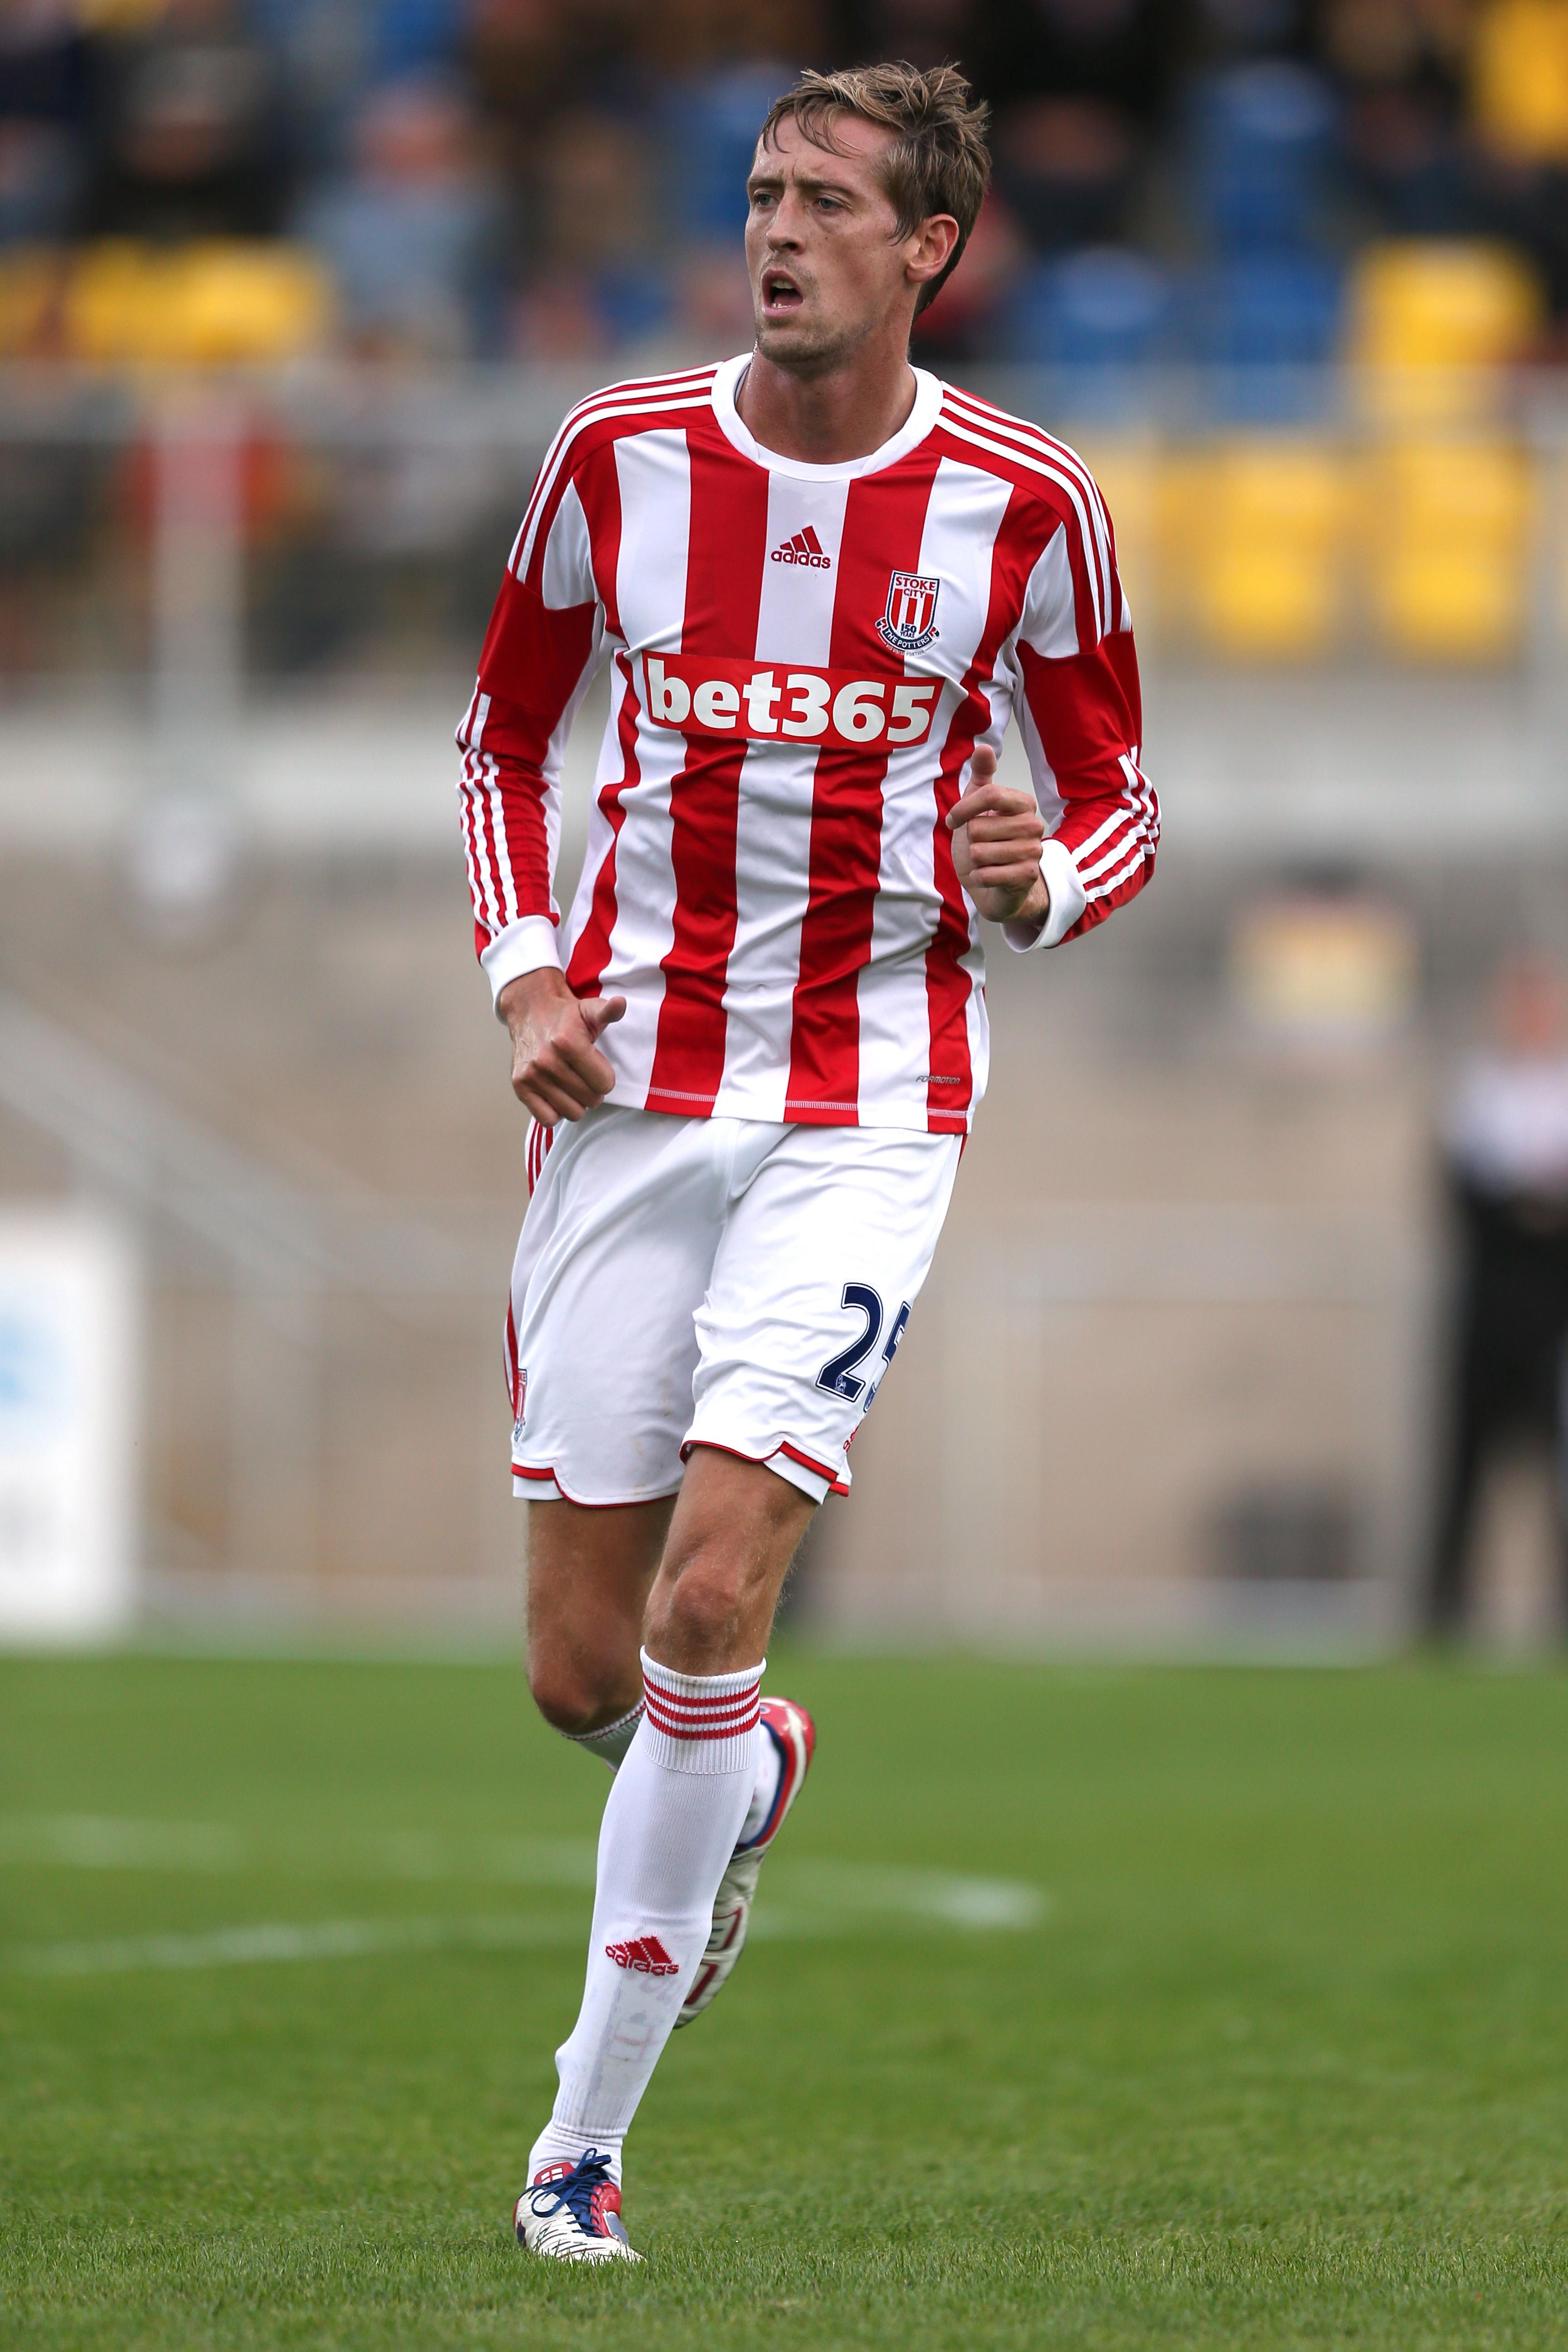 Practical jokes at Stoke City sometimes got out of hand, Crouch reveals